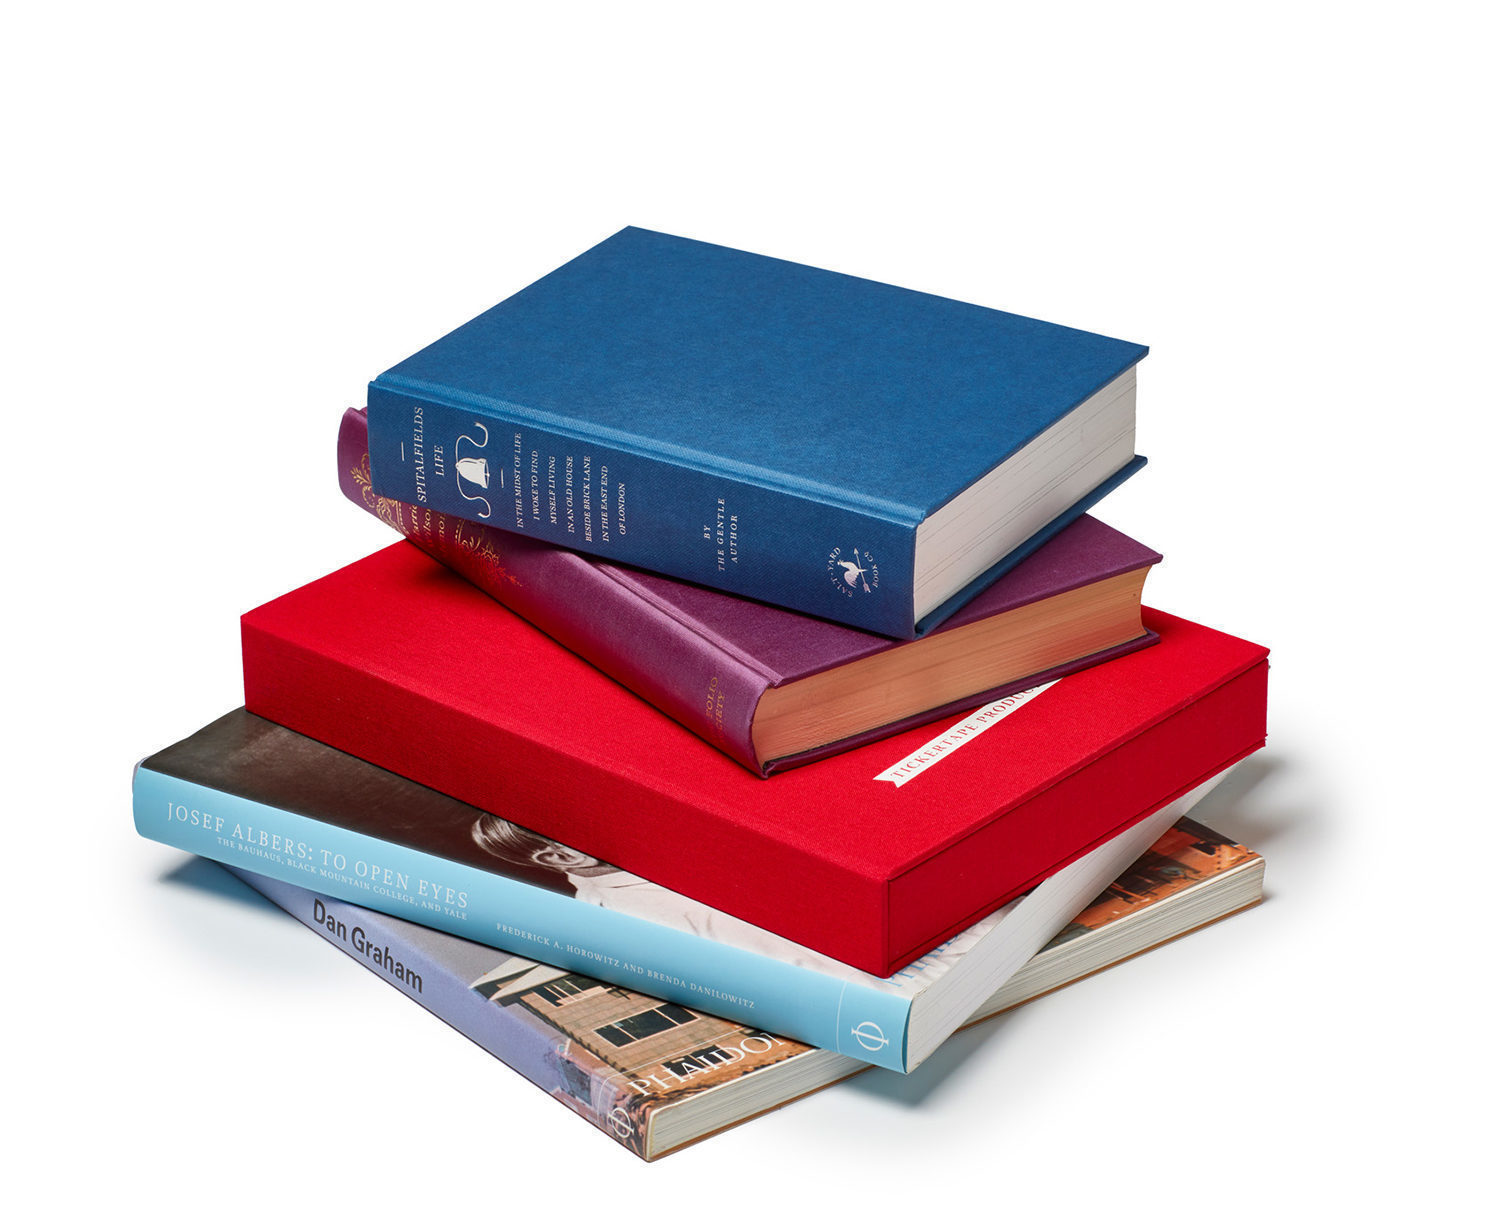 Spoken Portrait hand-bound presentation box in a stack with other special edition biographies